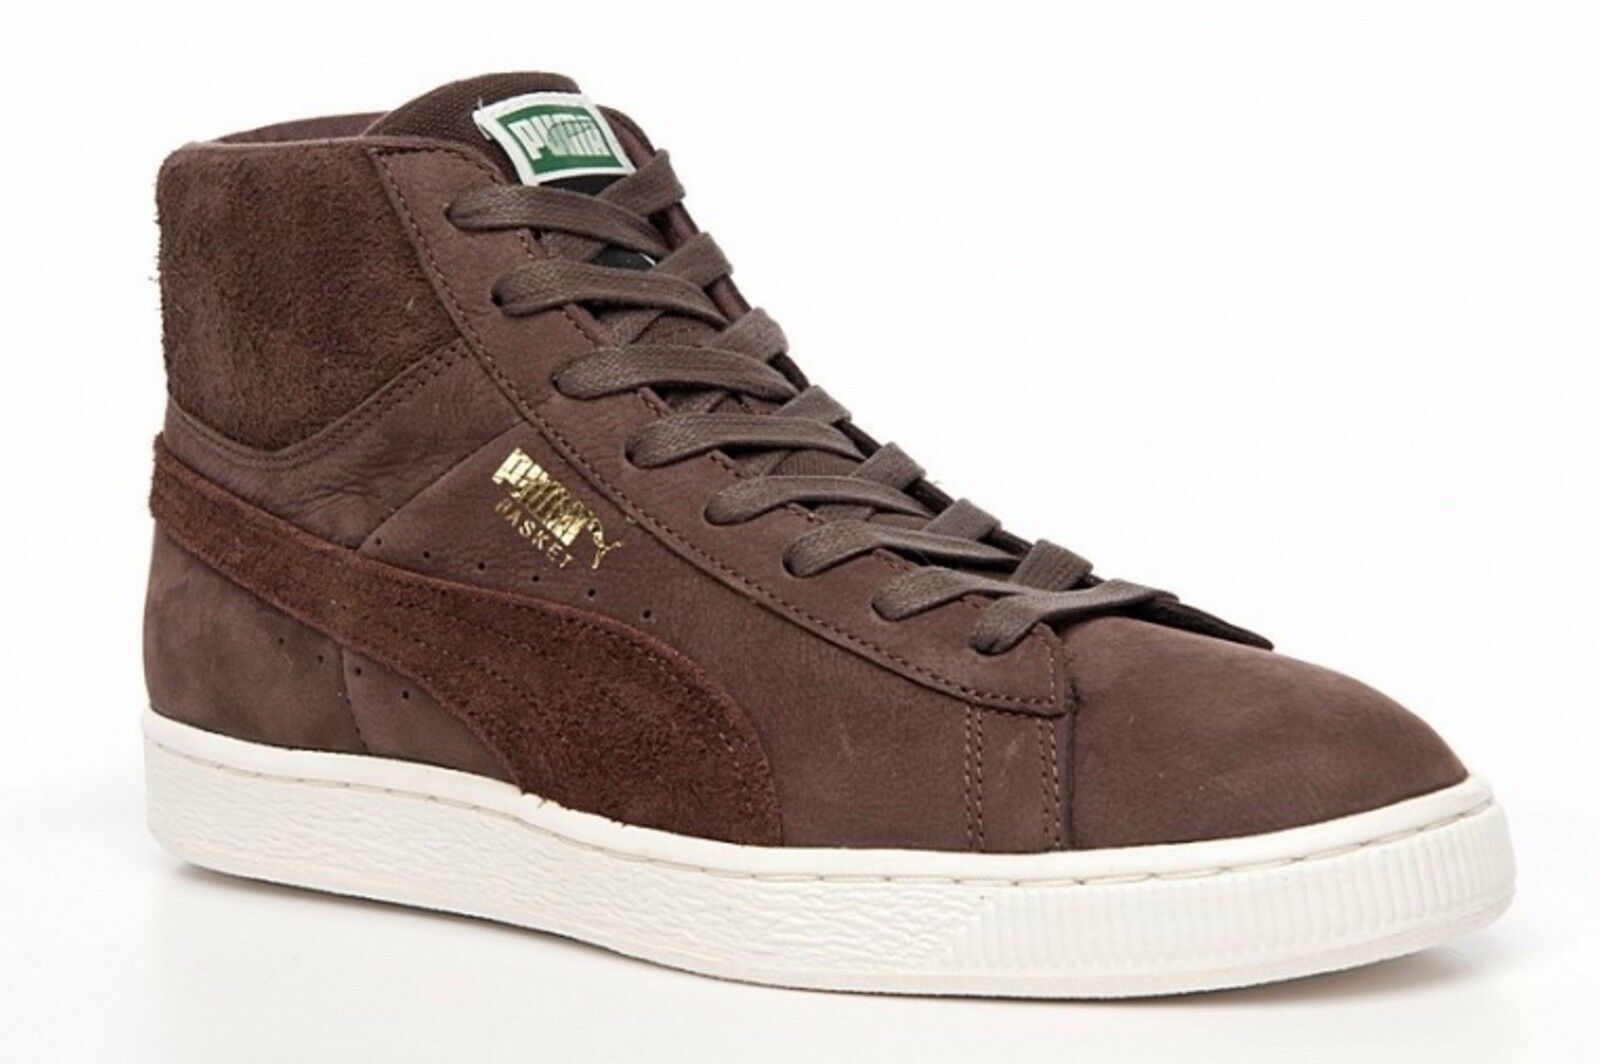 7537415c2963 Details about PUMA Mens Trainers Basket Classic Basketball Shoes Brown  Suede Sneakers Trainers